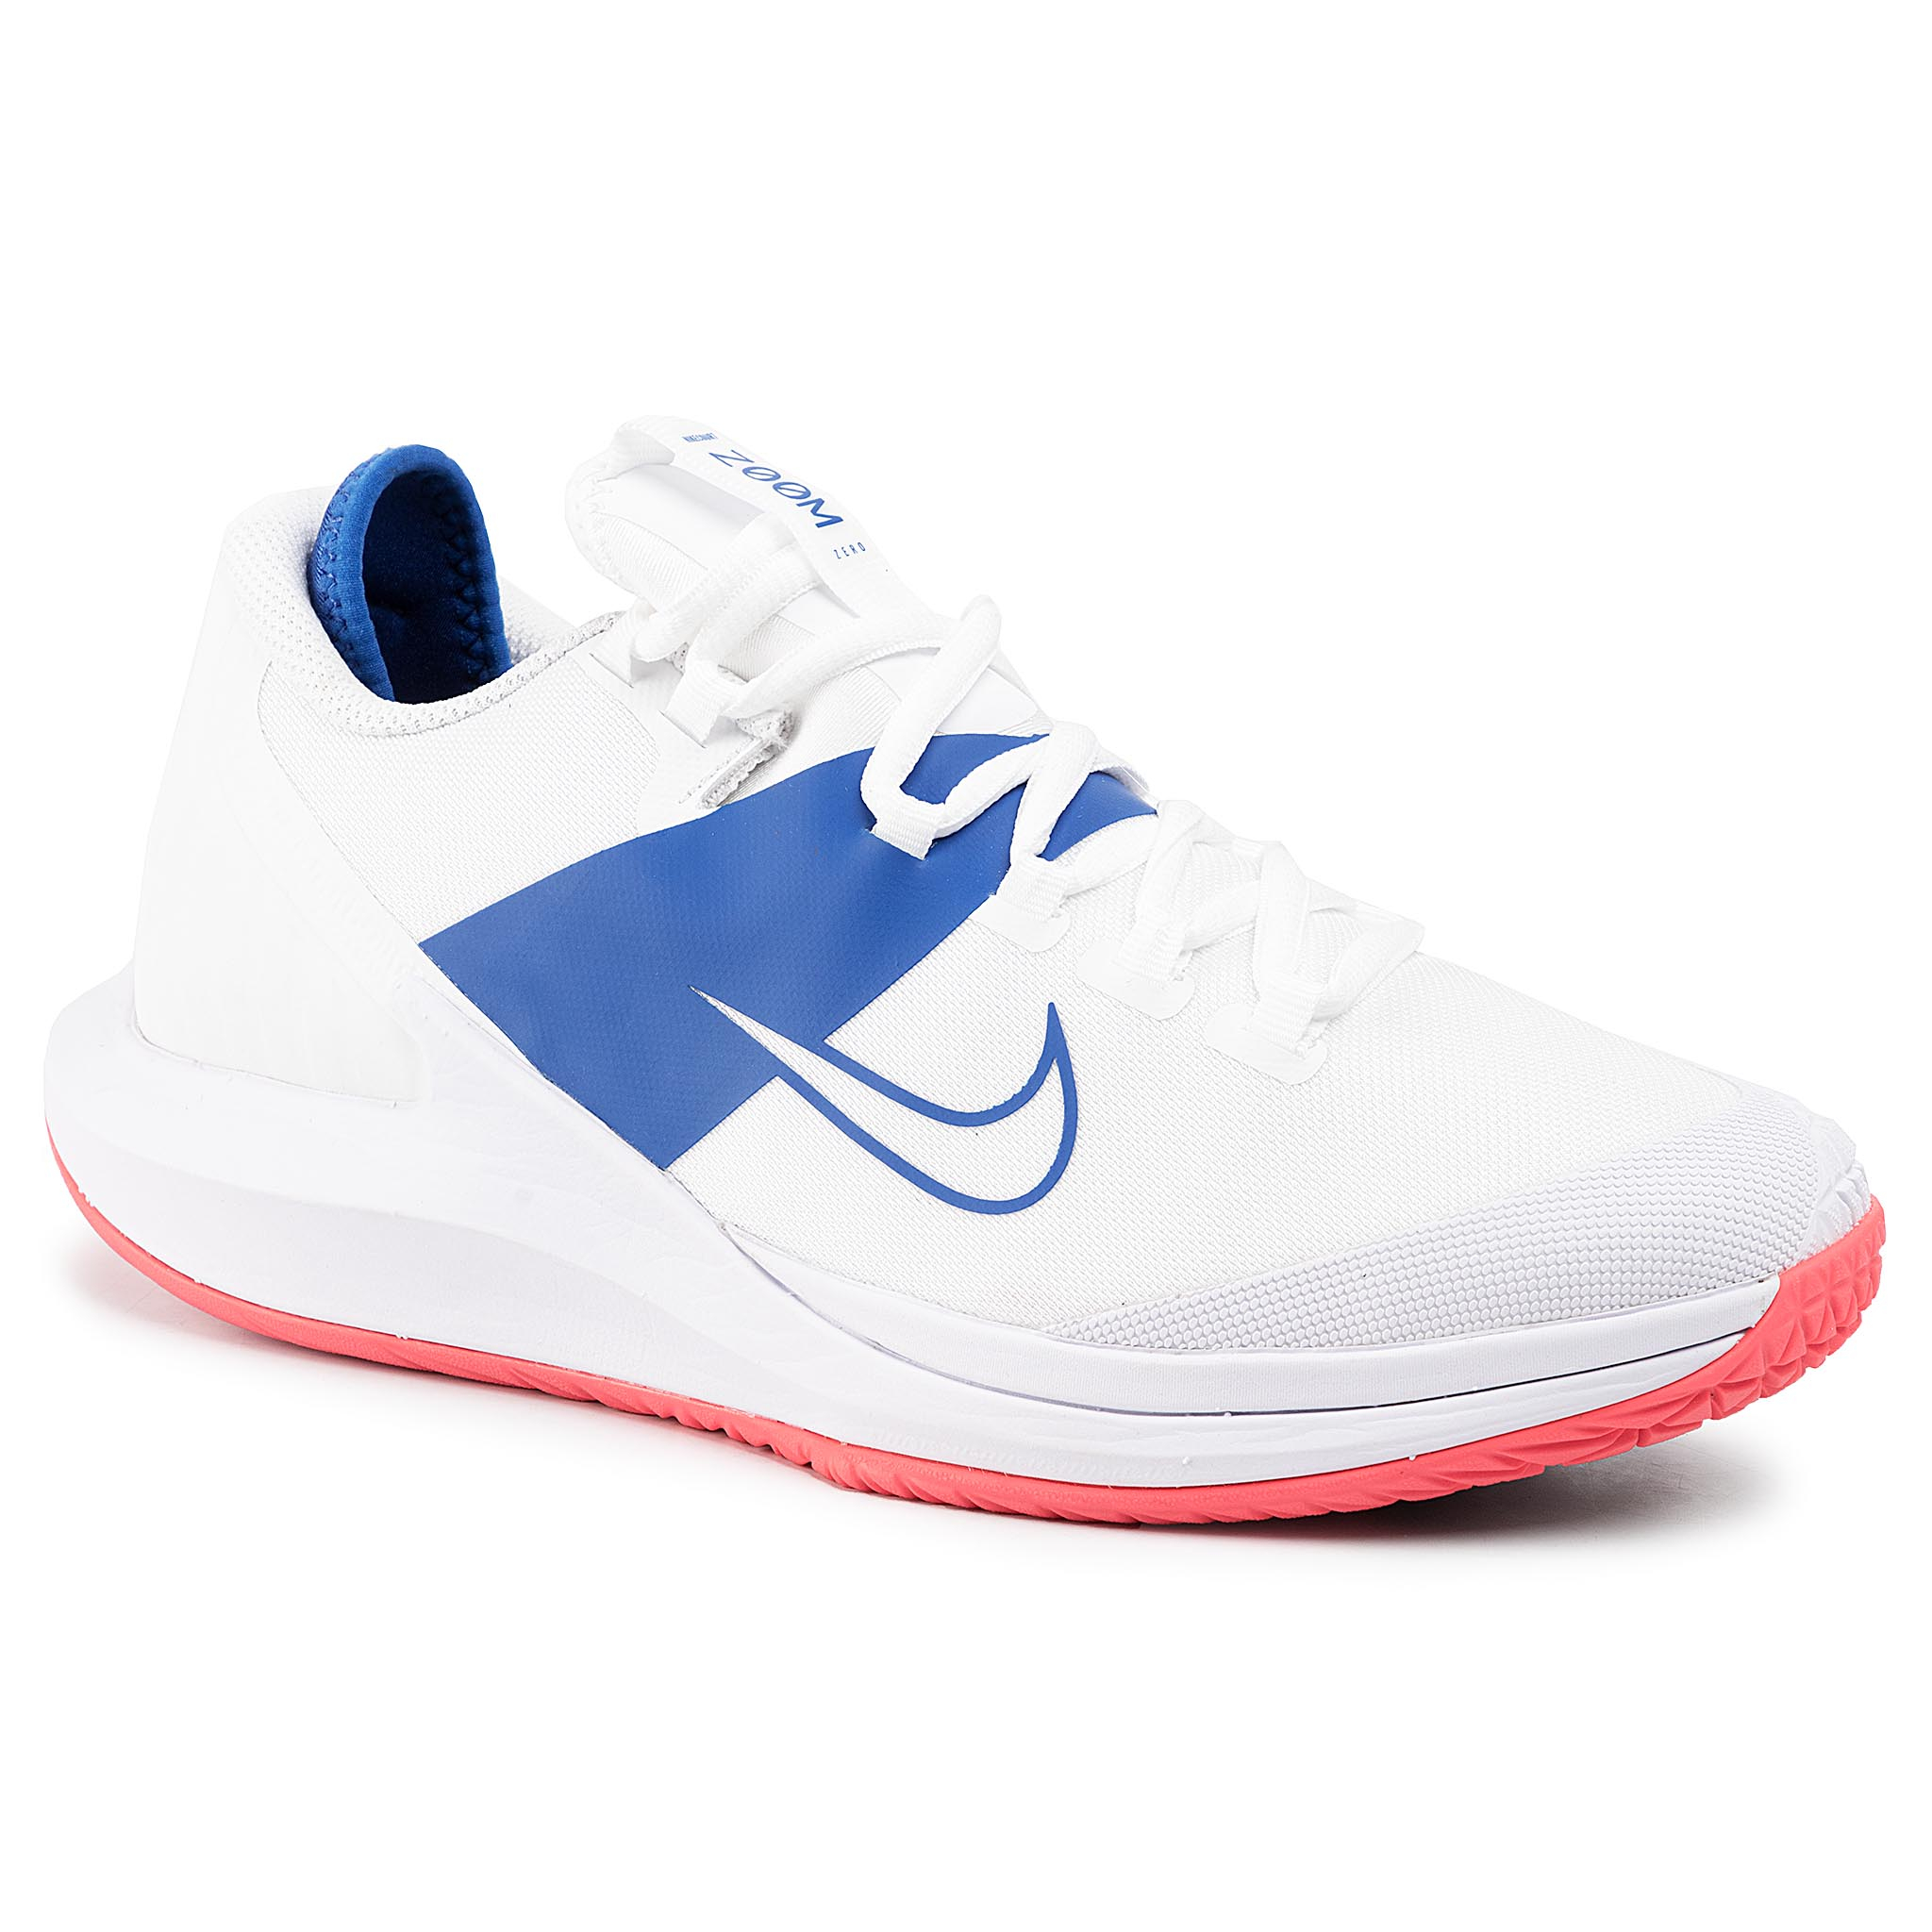 Pantofi Nike - Nikecourt Air Zoom Zero Hc Aa8018 103 White/White/Game Royal imagine epantofi.ro 2021